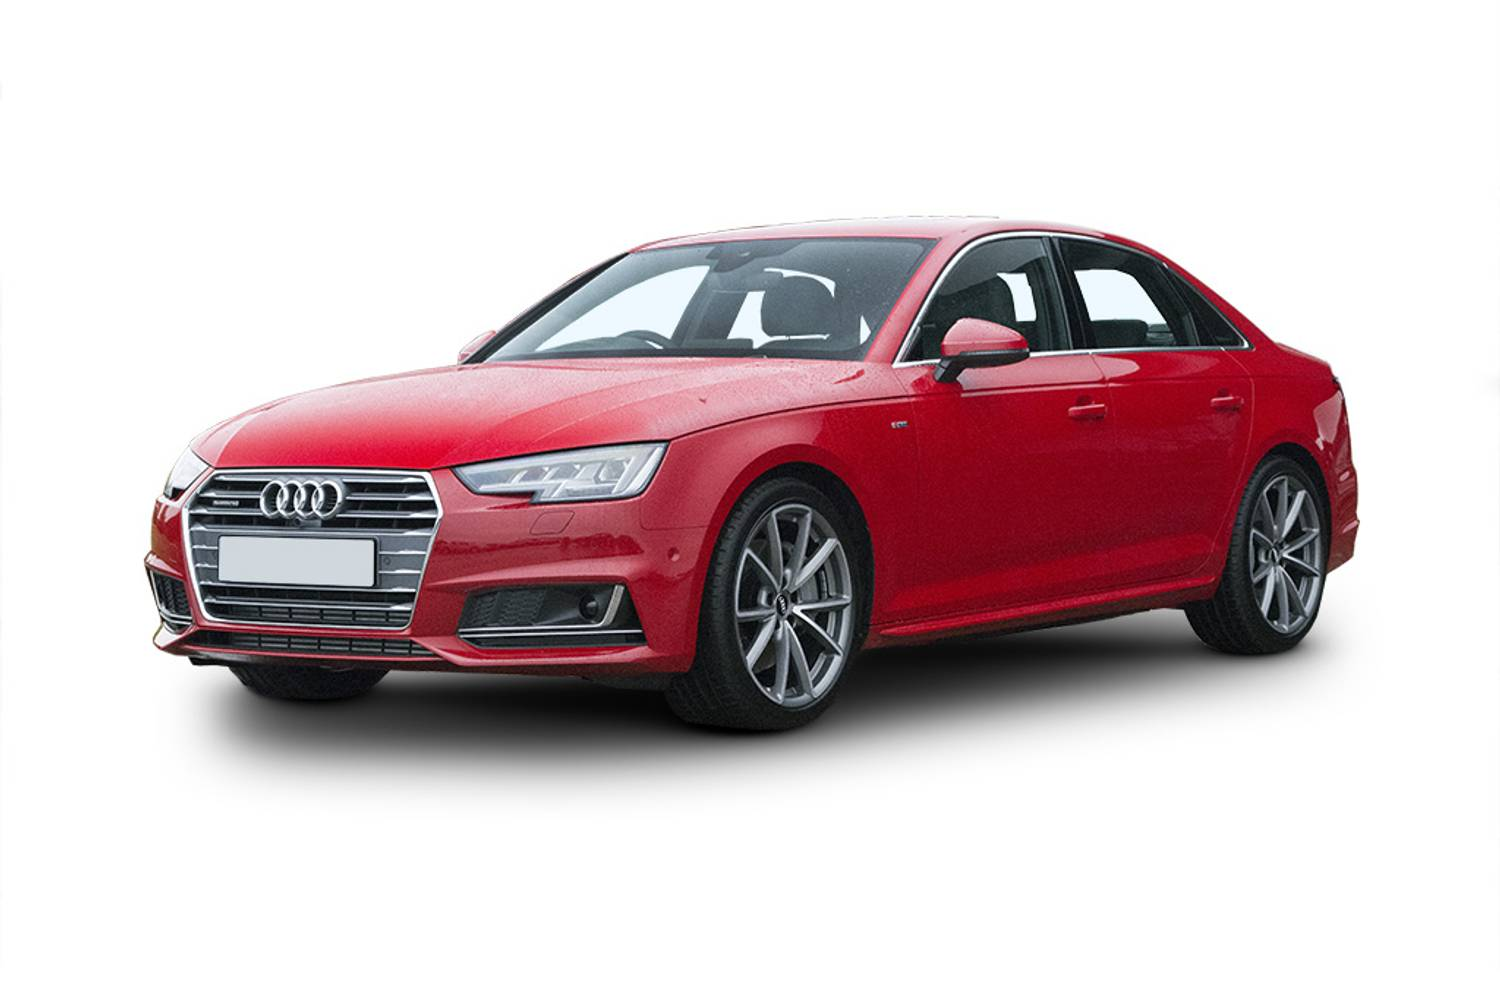 New Audi A4 Saloon 1 4t Fsi Sport 4 Door 2015 For Sale